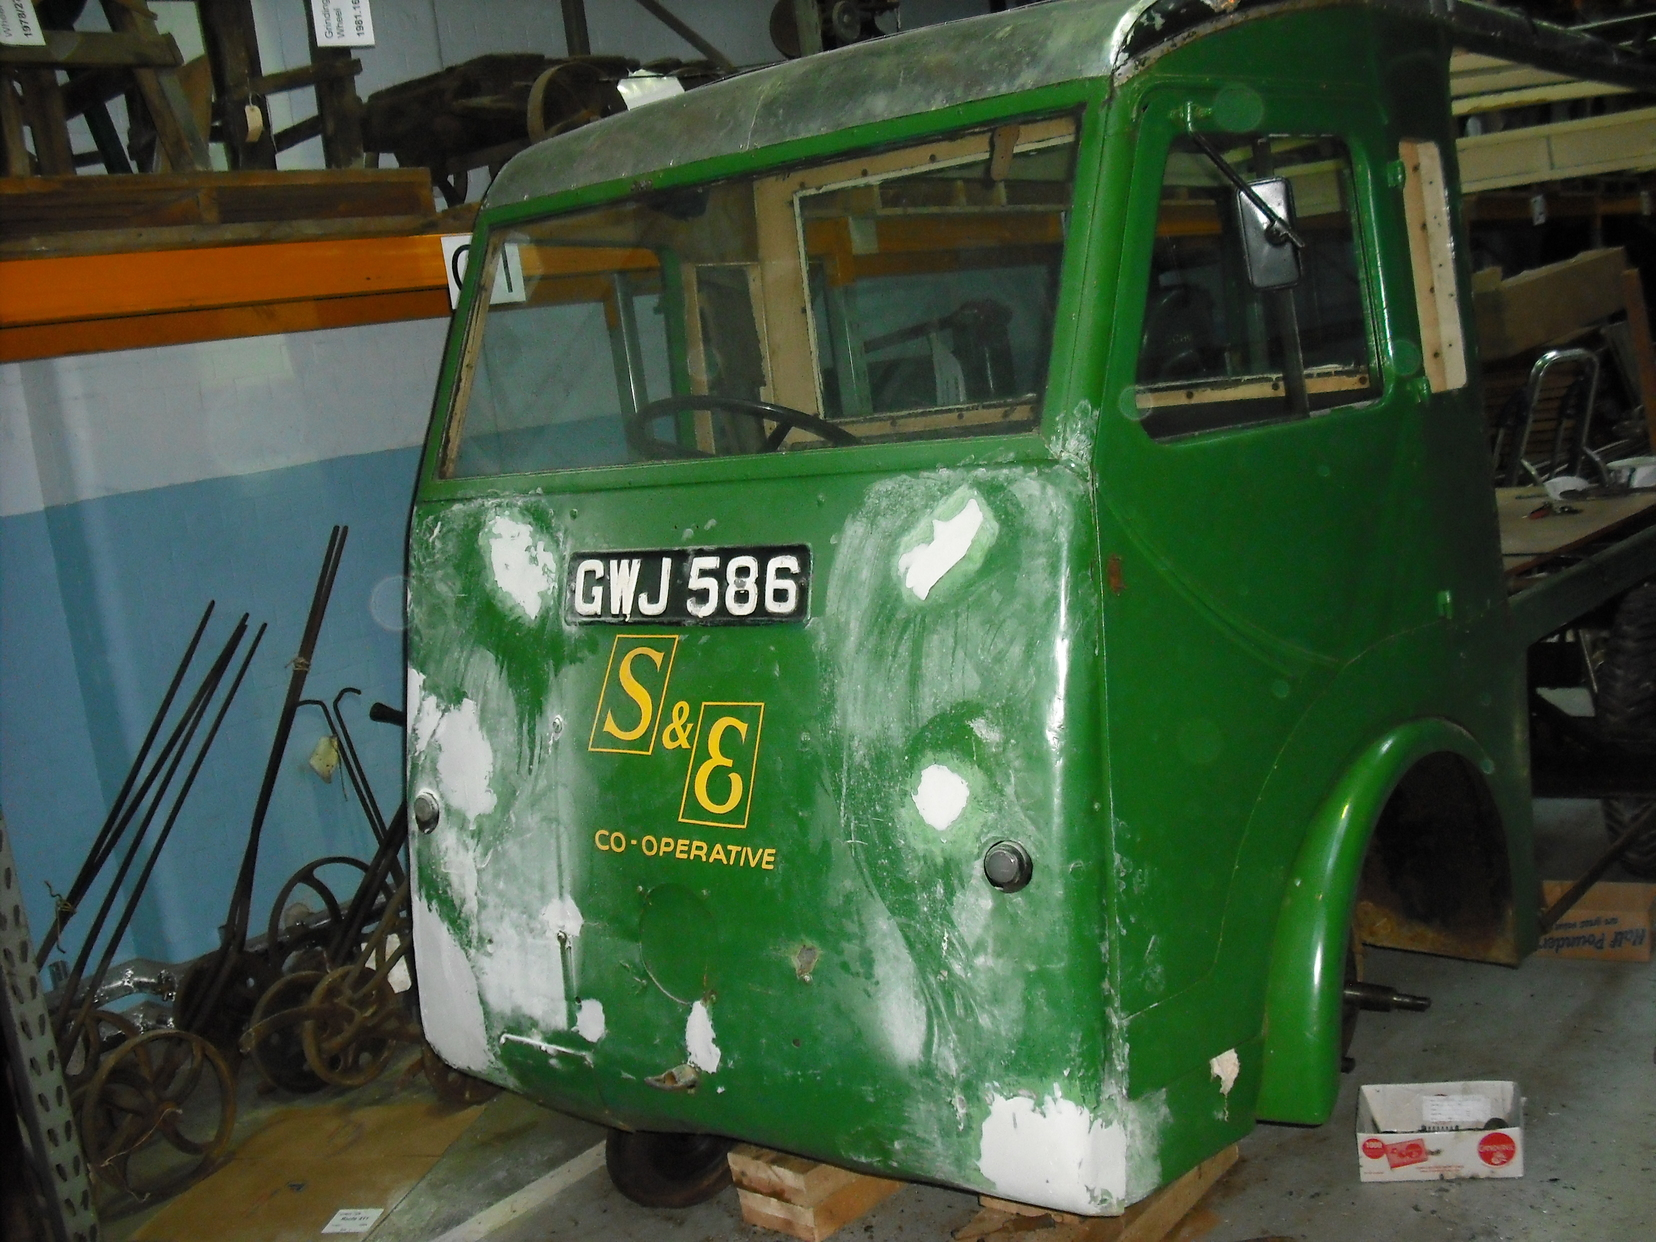 Milk float part way through restoration